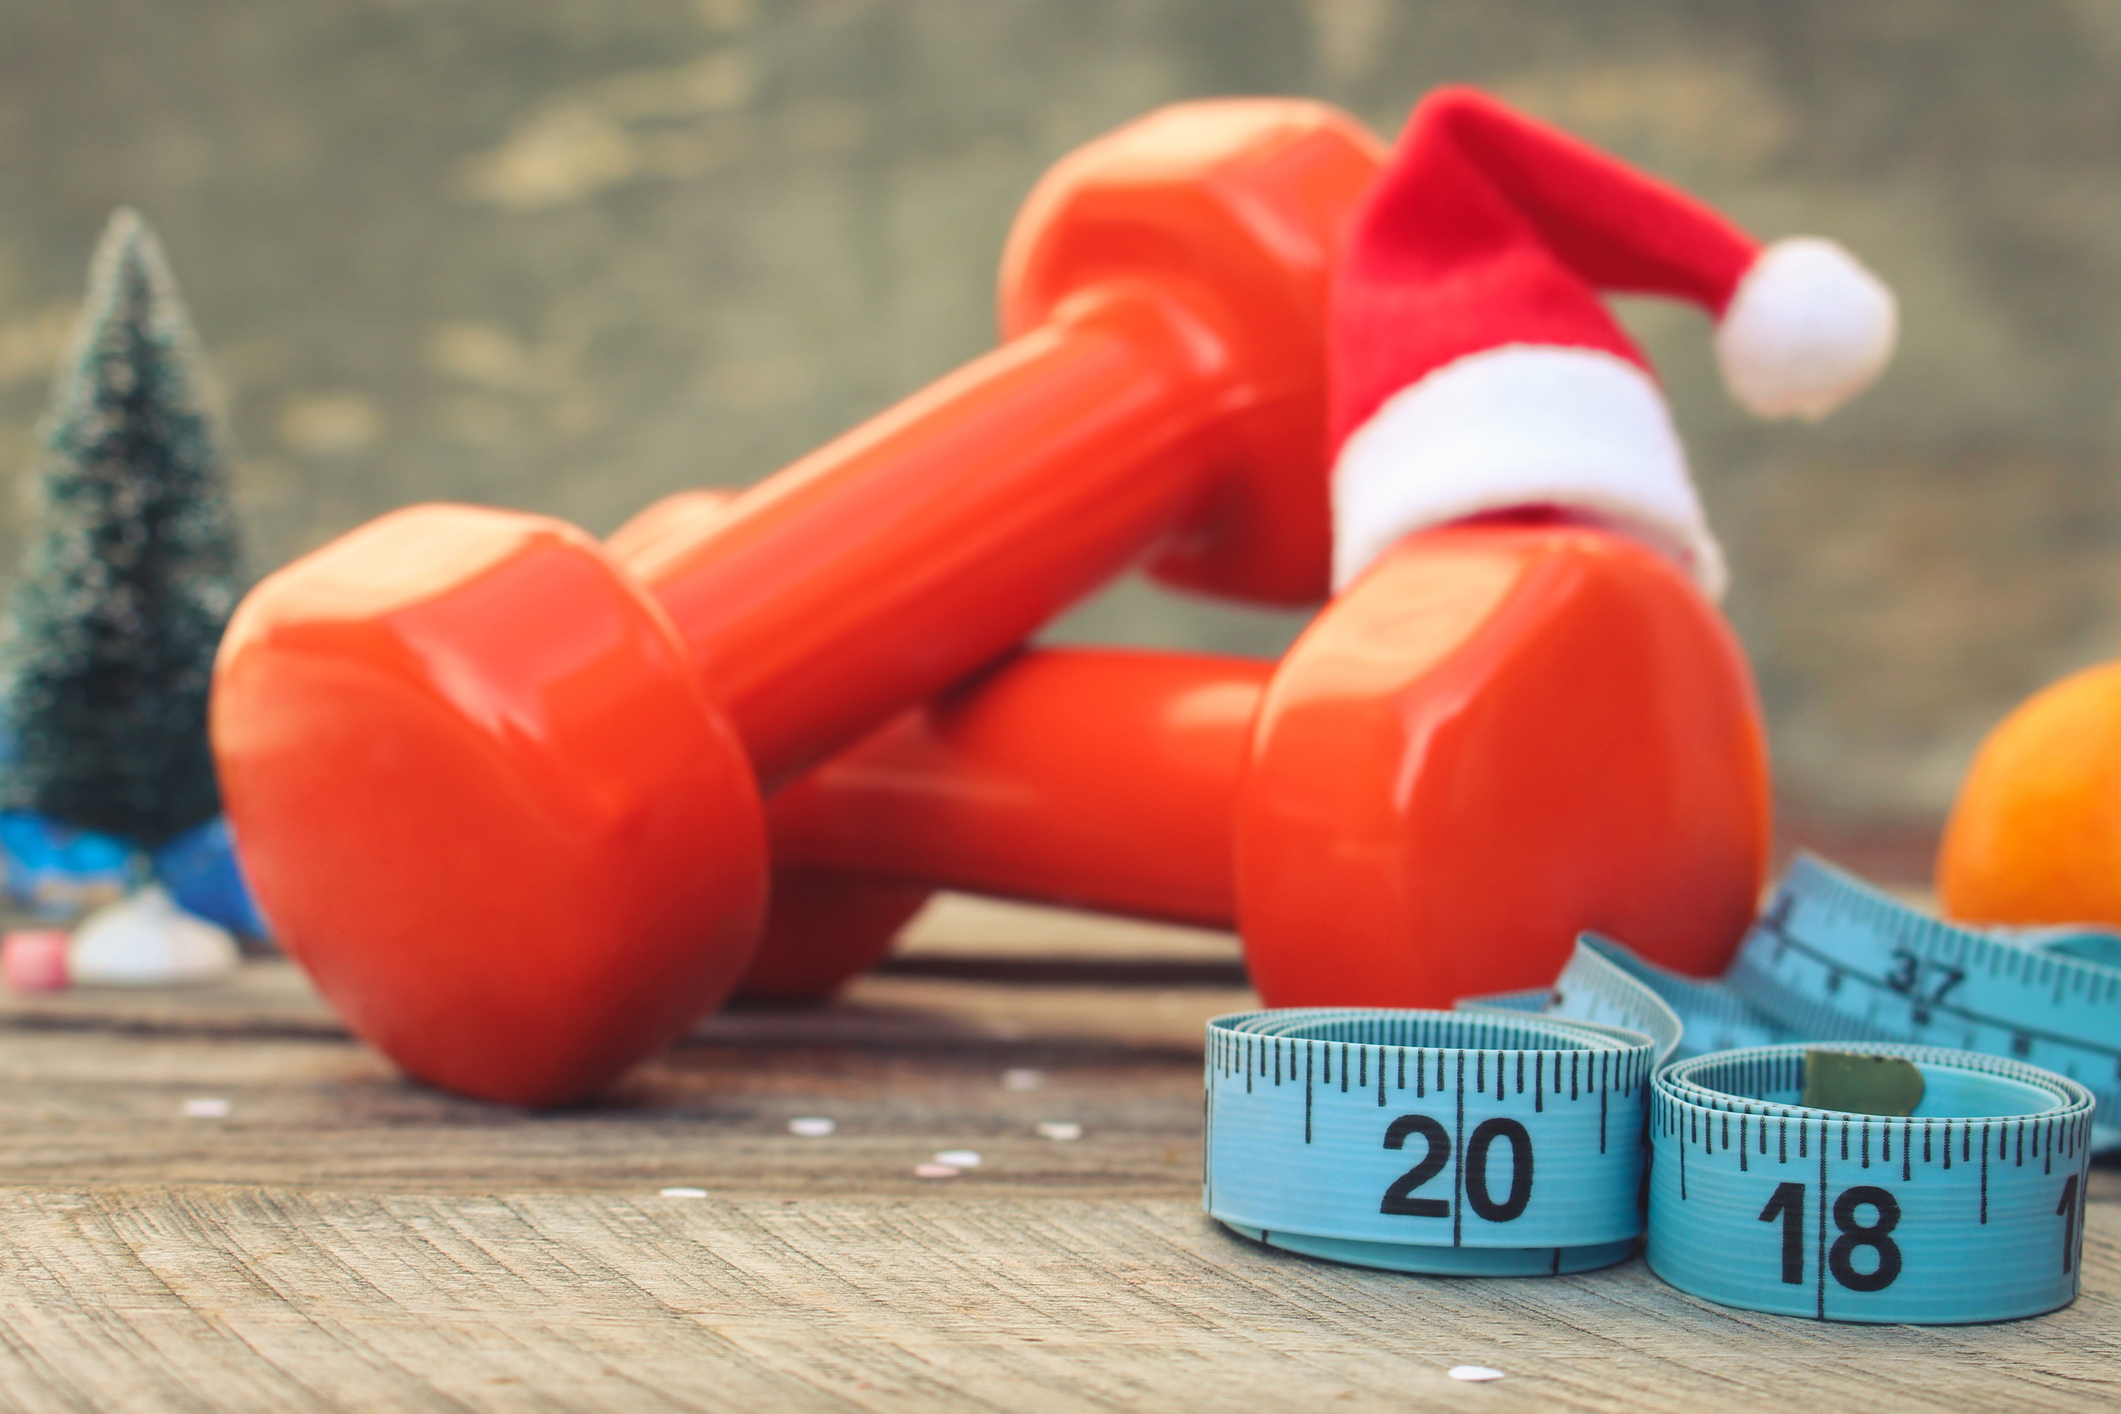 Healthy Living During The Holidays